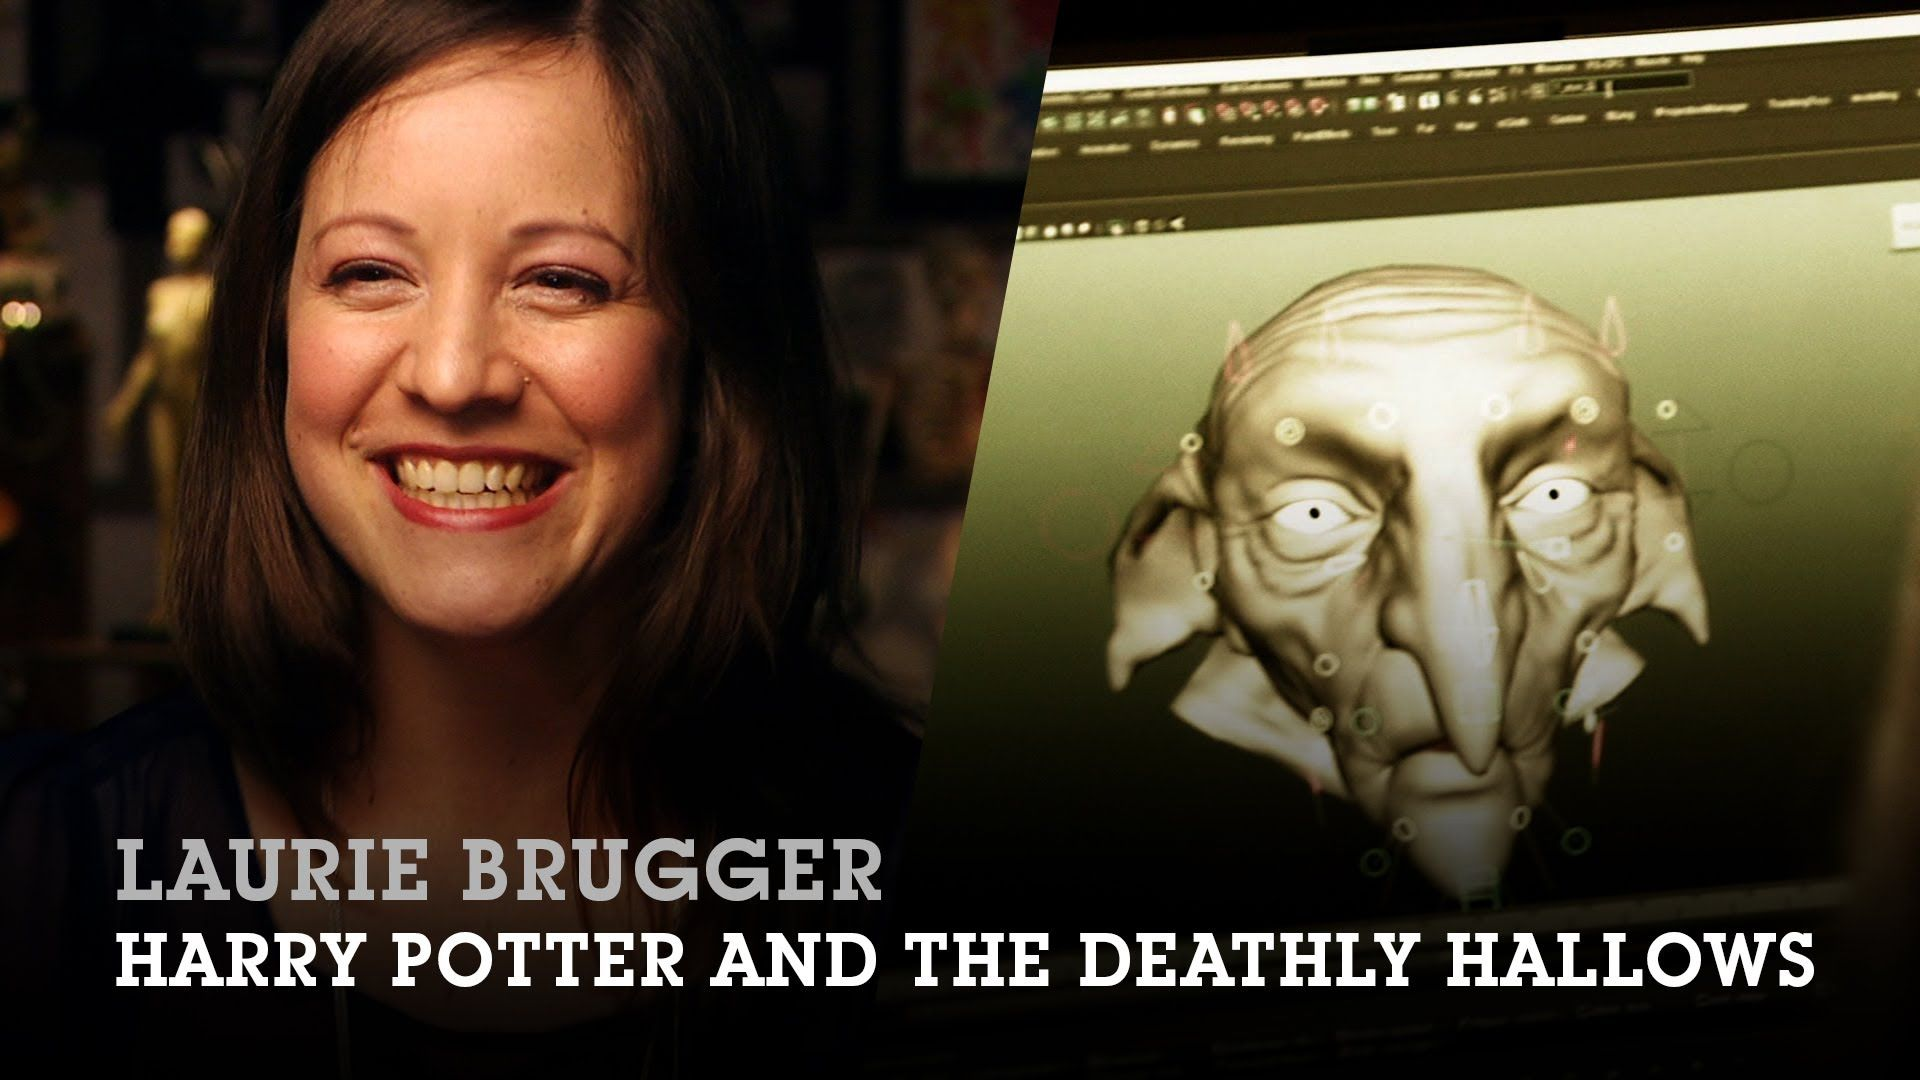 Laurie Brugger 2011 Hall Of Fame Inductee 2000 Computer Animation Graduate Now Head Of Rigging At Framesto Clash Of The Titans Deathly Hallows Part 1 Laurie